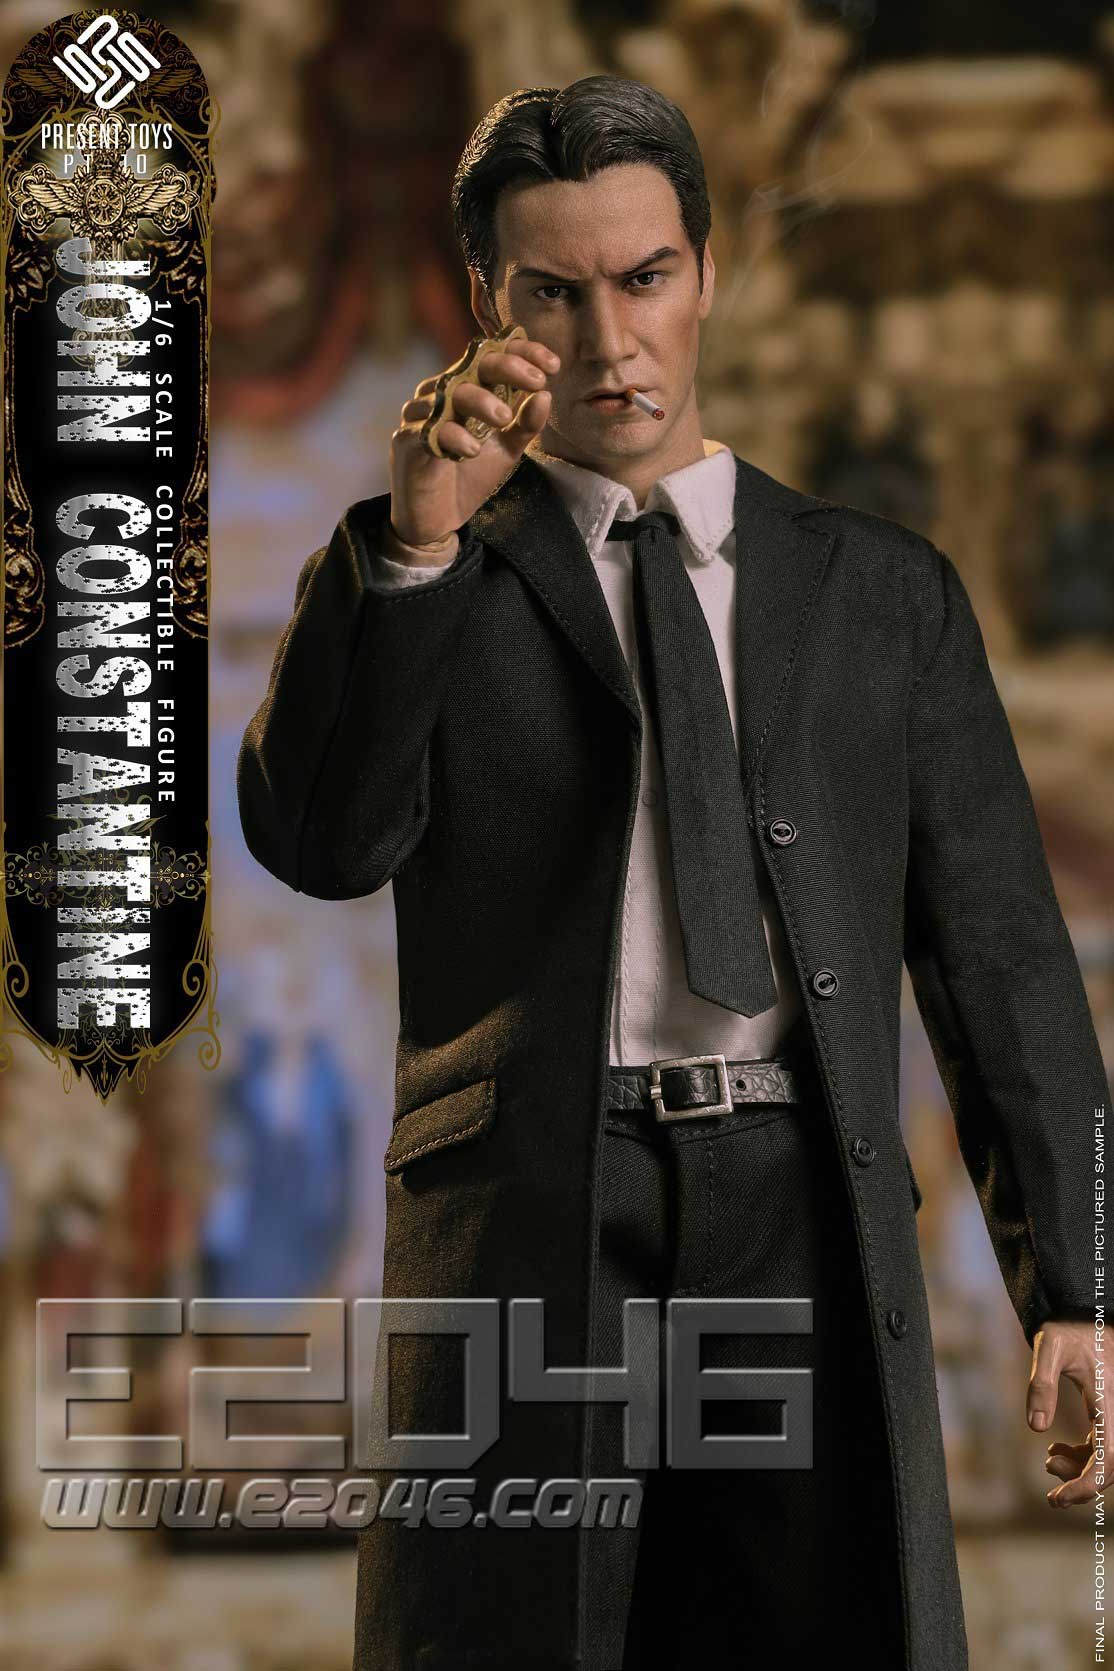 Hell Detective (DOLL)